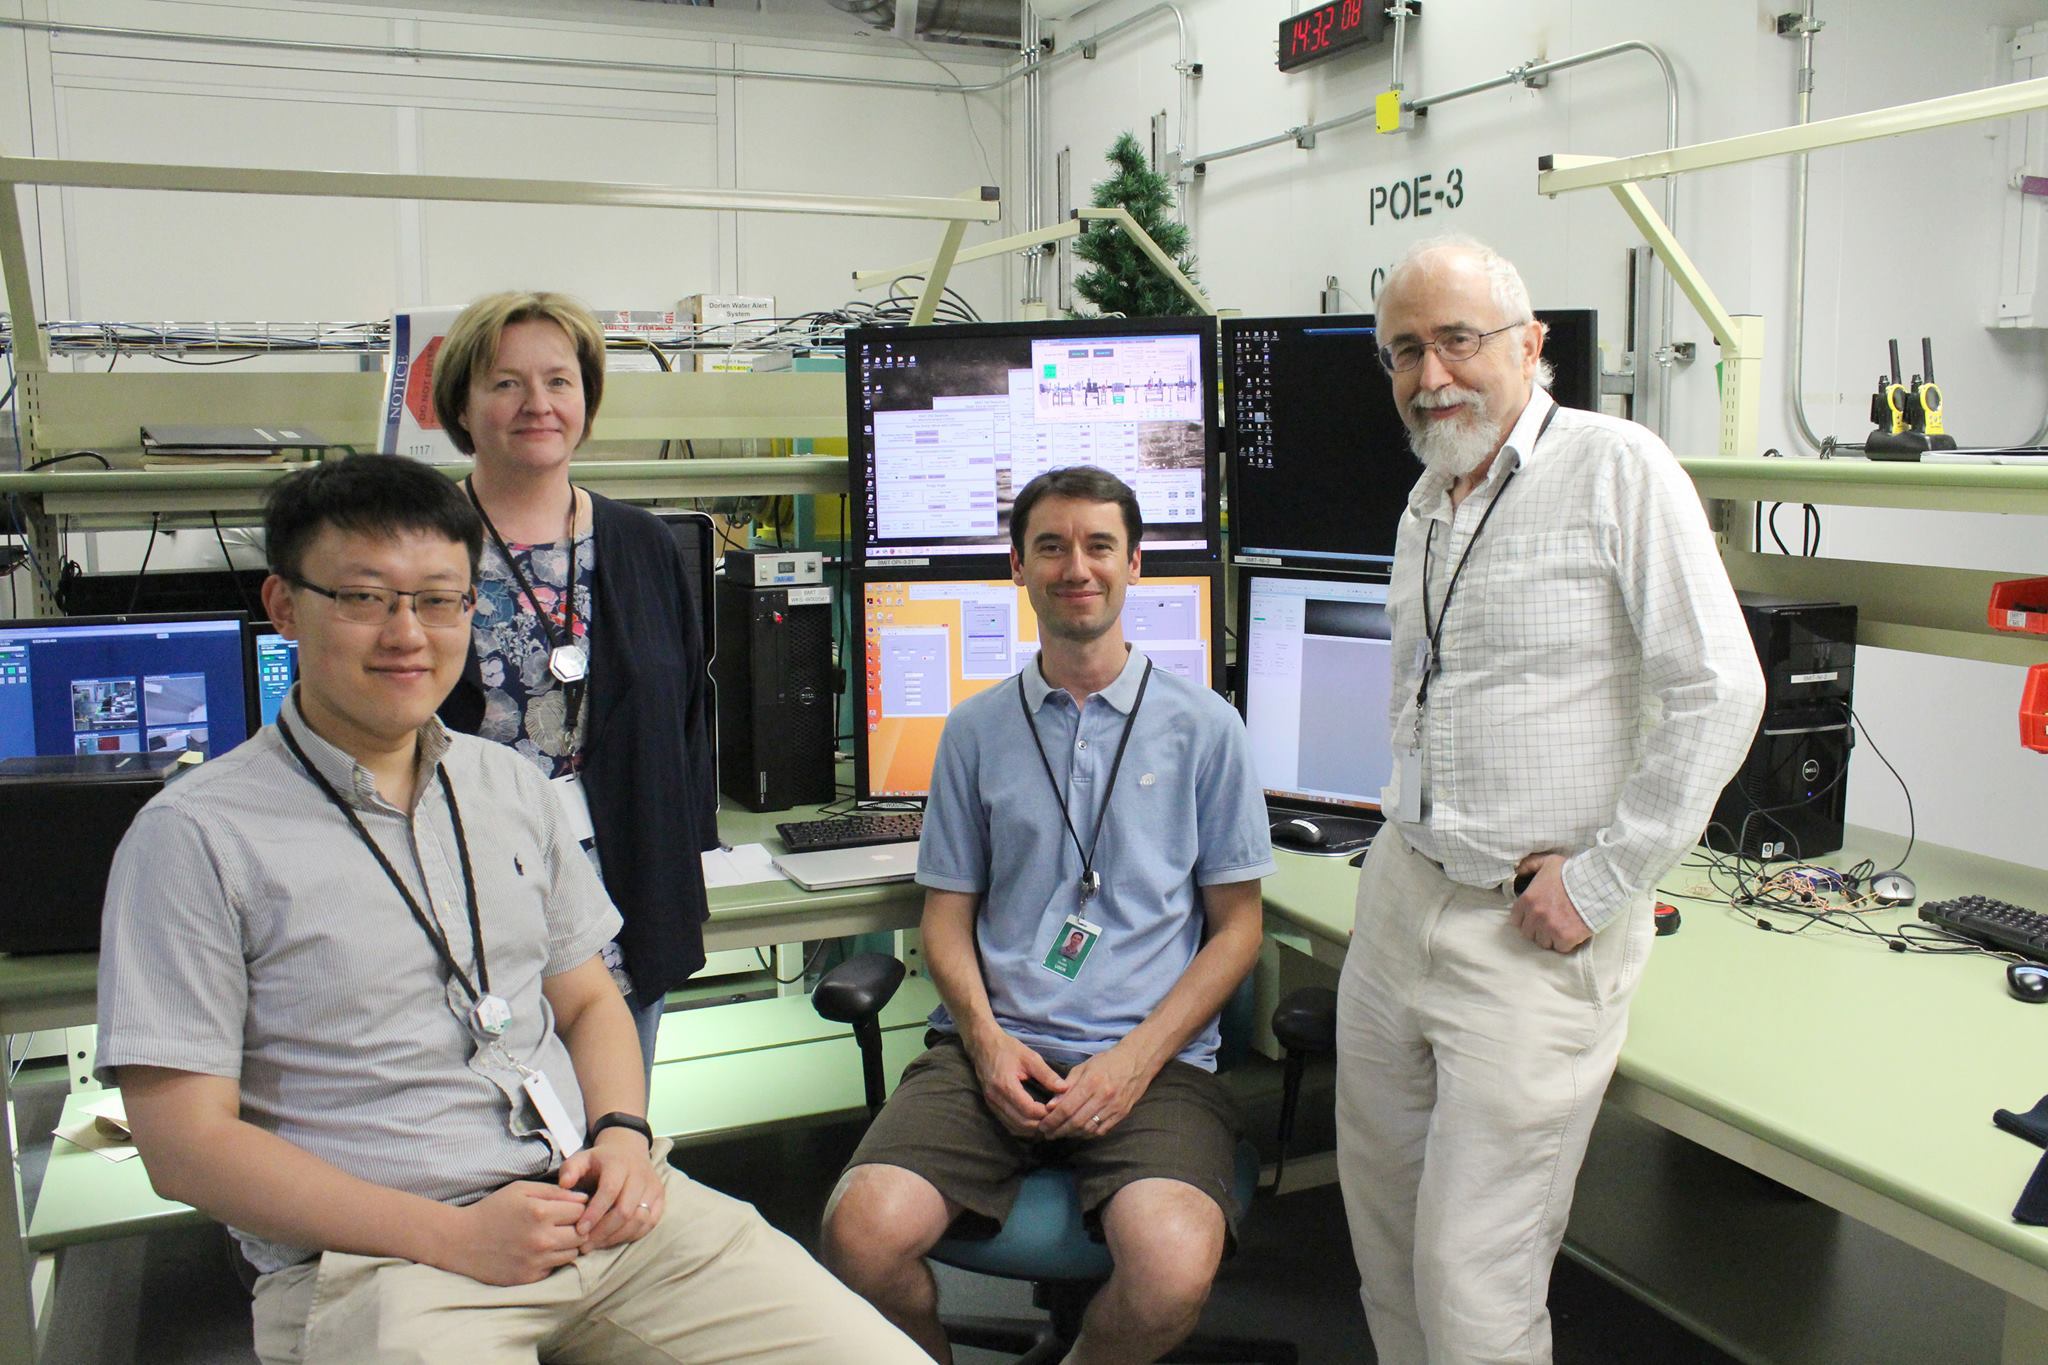 University of Helsinki researchers Teng Zhang and Paula Elomaa and University of Calgary scientists Mik Cieslak and Przemyslaw Prusinkiewicz at the BMIT beamline. The team is using computed tomography (a CT-scan) to image the inside of Aster-family flowers, to visualize their hidden vasculature.